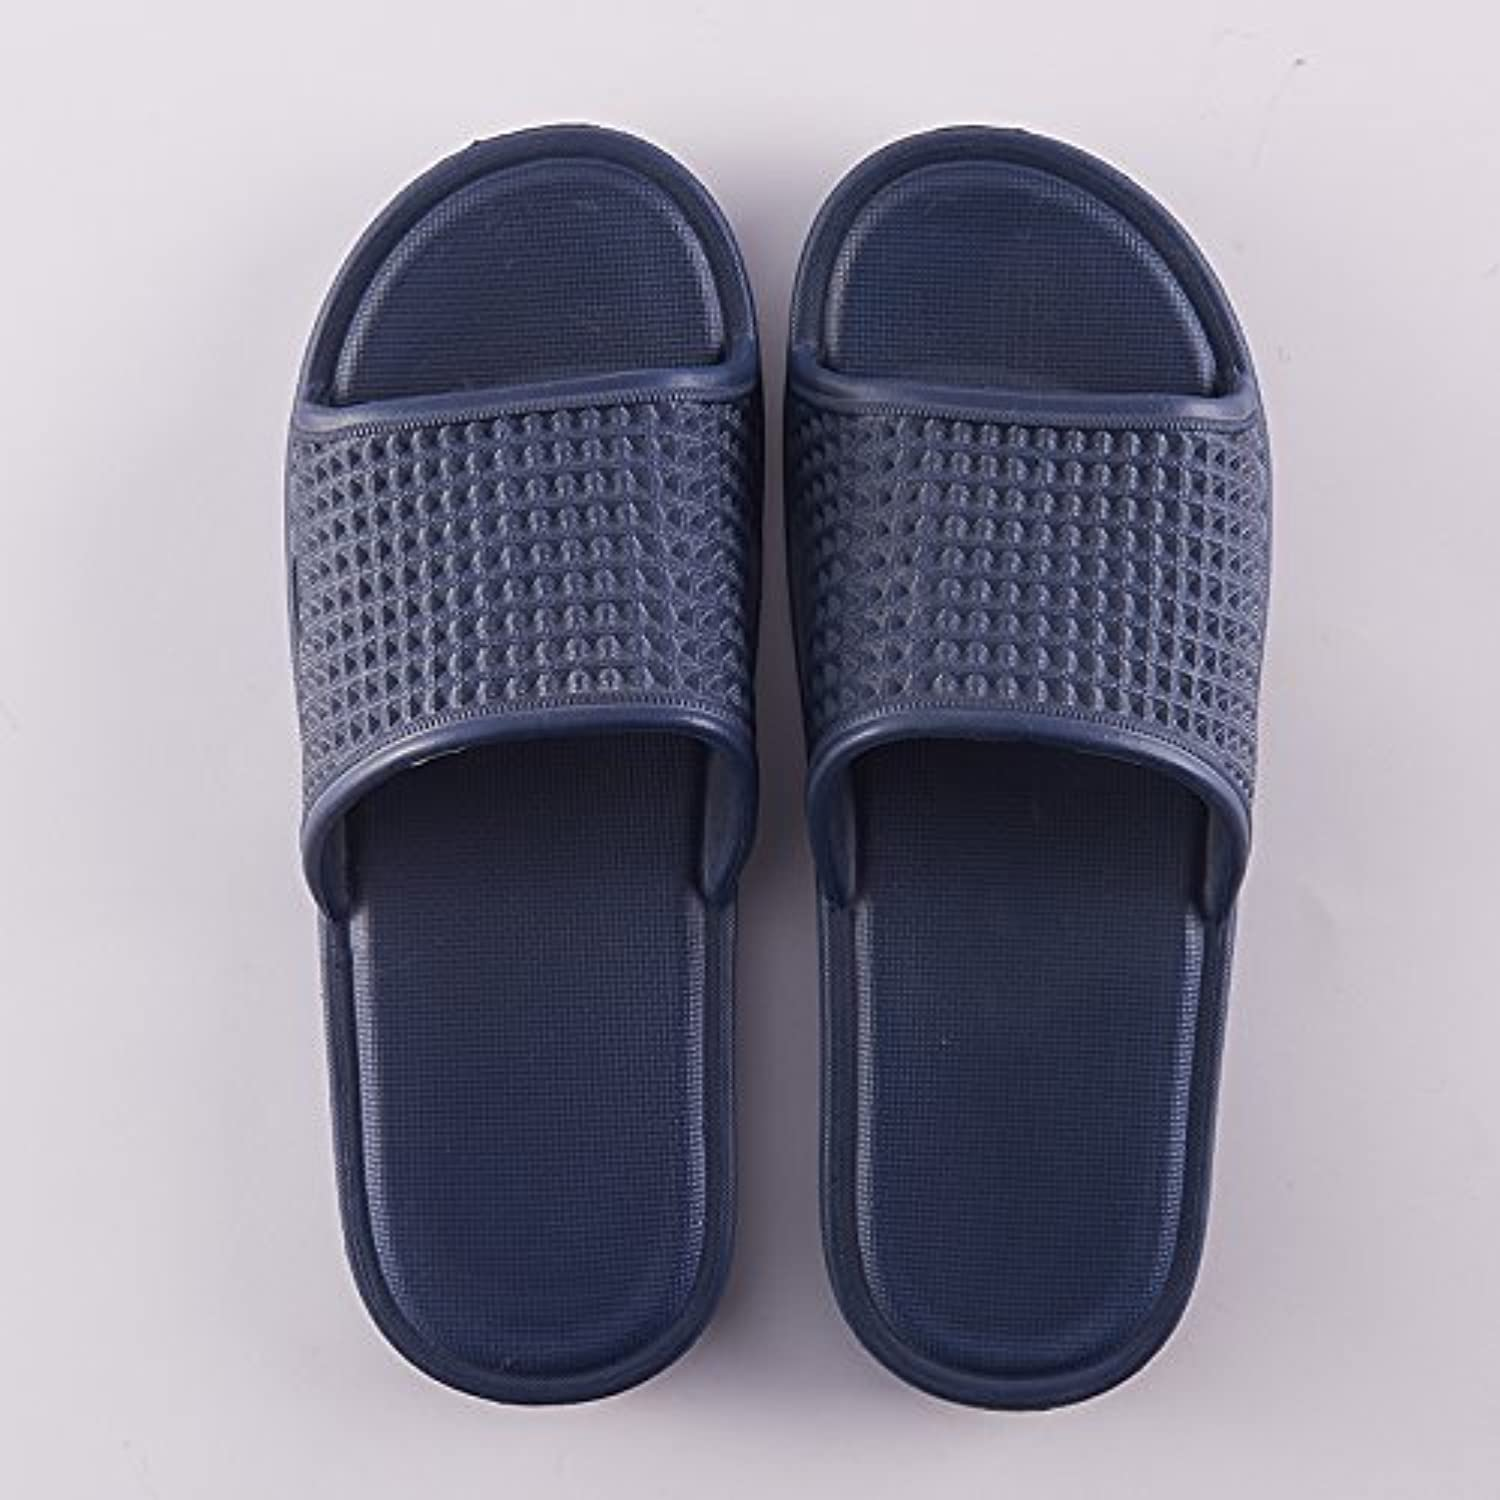 fankou The Bathroom Slippers Summer Girls Stay Indoors with Anti-Slip Thick Bath for Couples Home Cool Slippers...